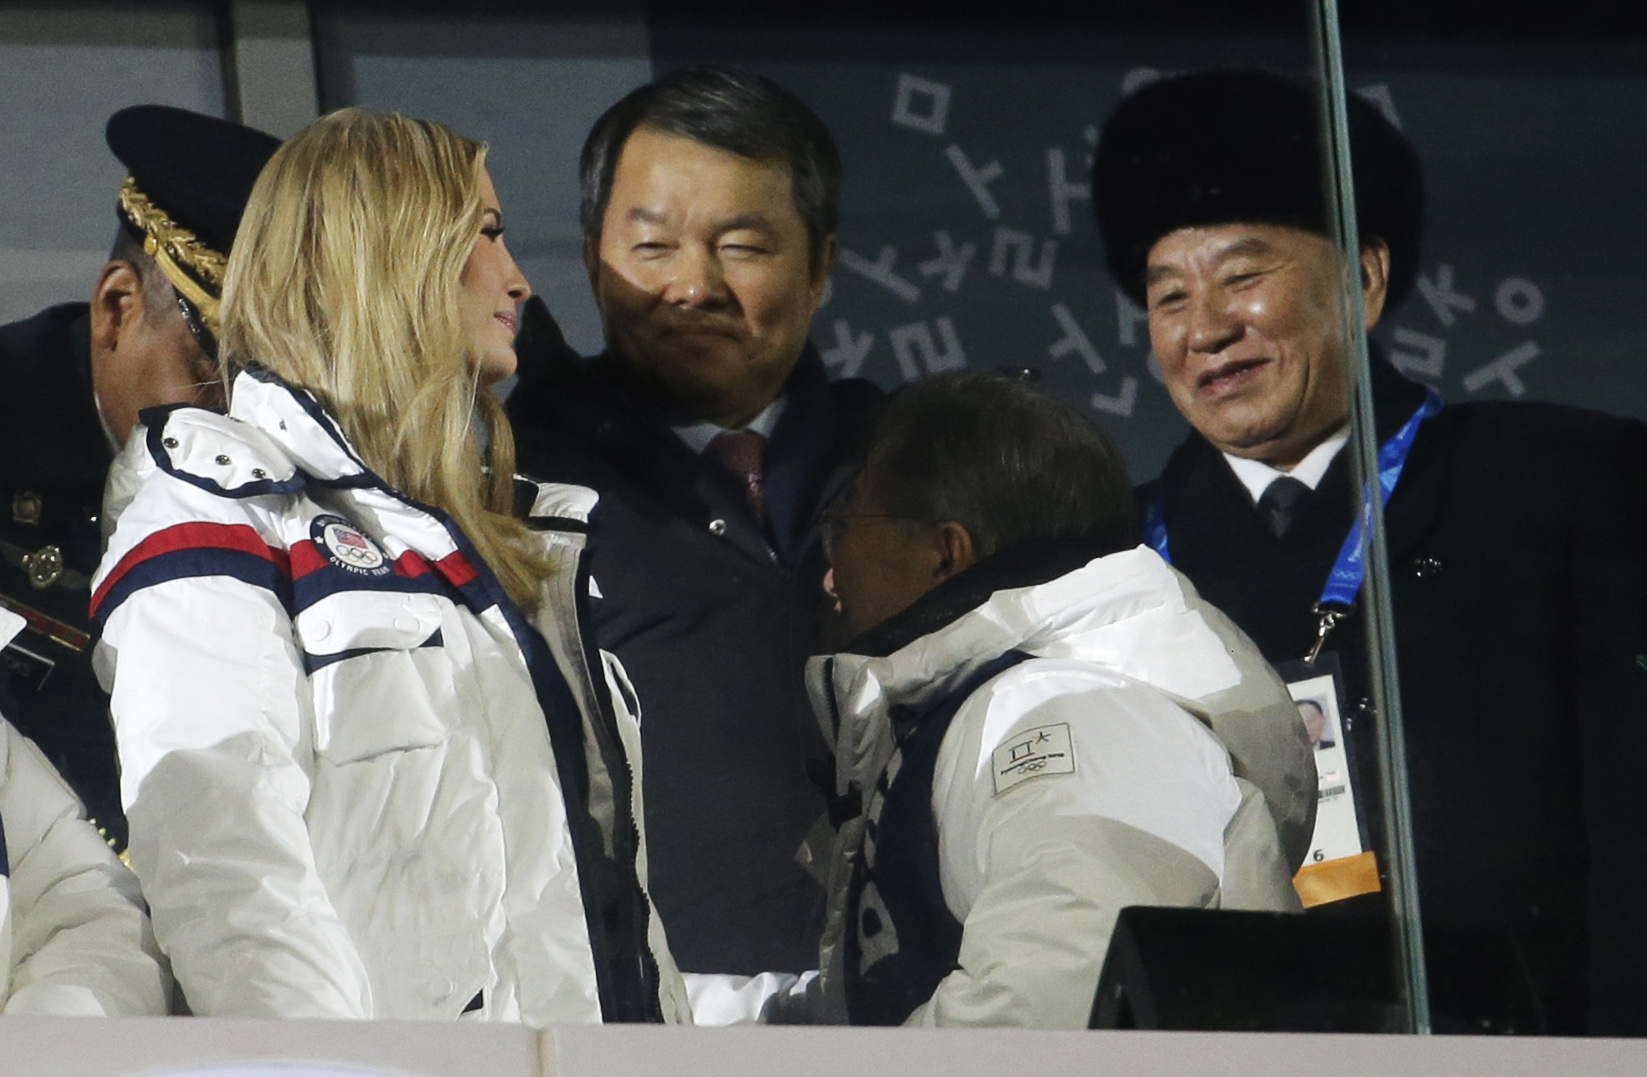 Ivanka Trump, left, and Kim Yong Chol, vice chairman of North Korea's ruling Workers' Party Central Committee, right, attend the closing ceremony of the 2018 Winter Olympics in Pyeongchang, South Korea, Feb. 25, 2018.